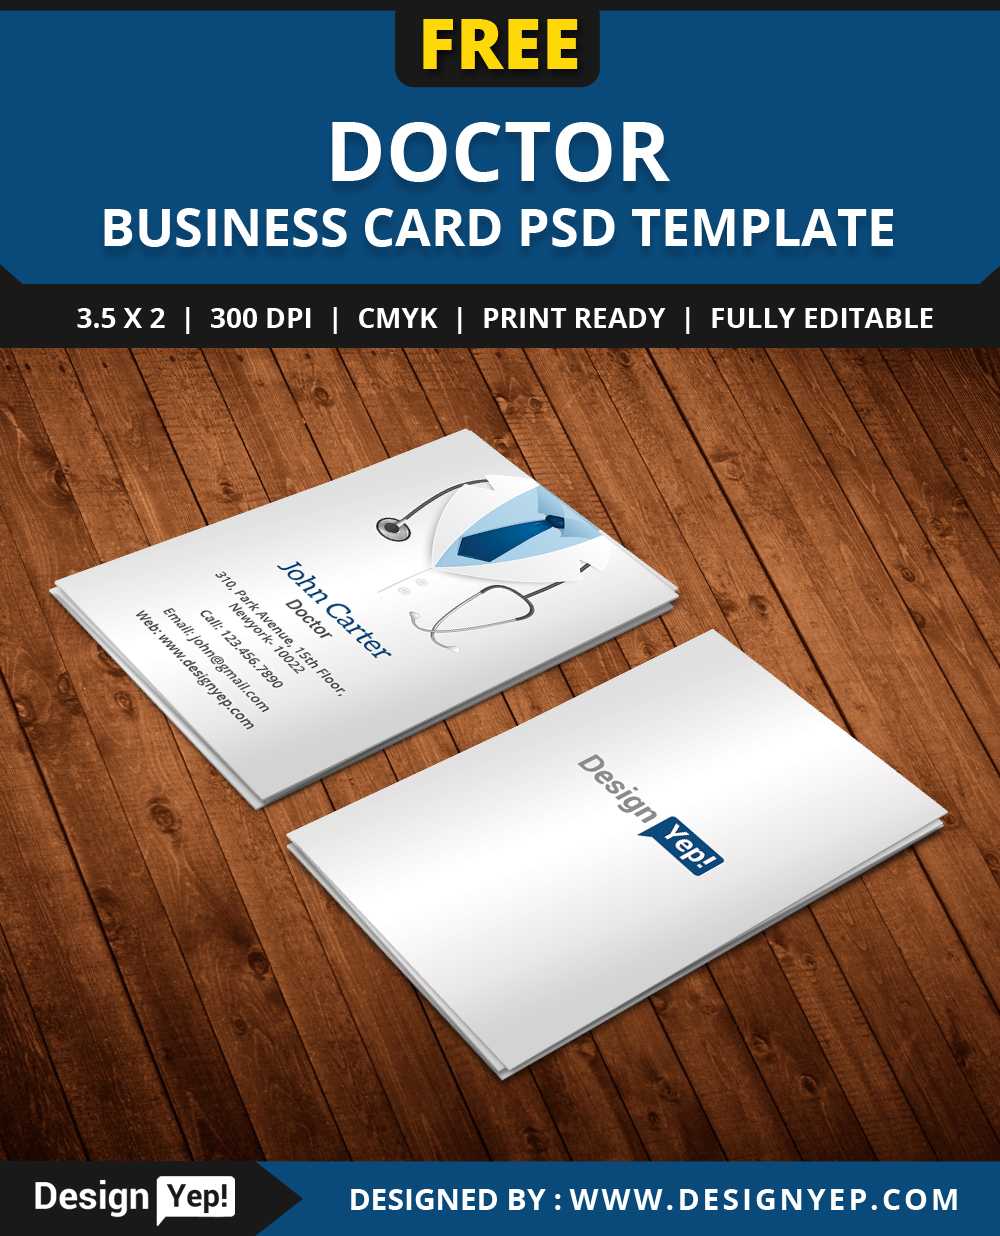 Free Doctor Business Card Template PSD on Behance